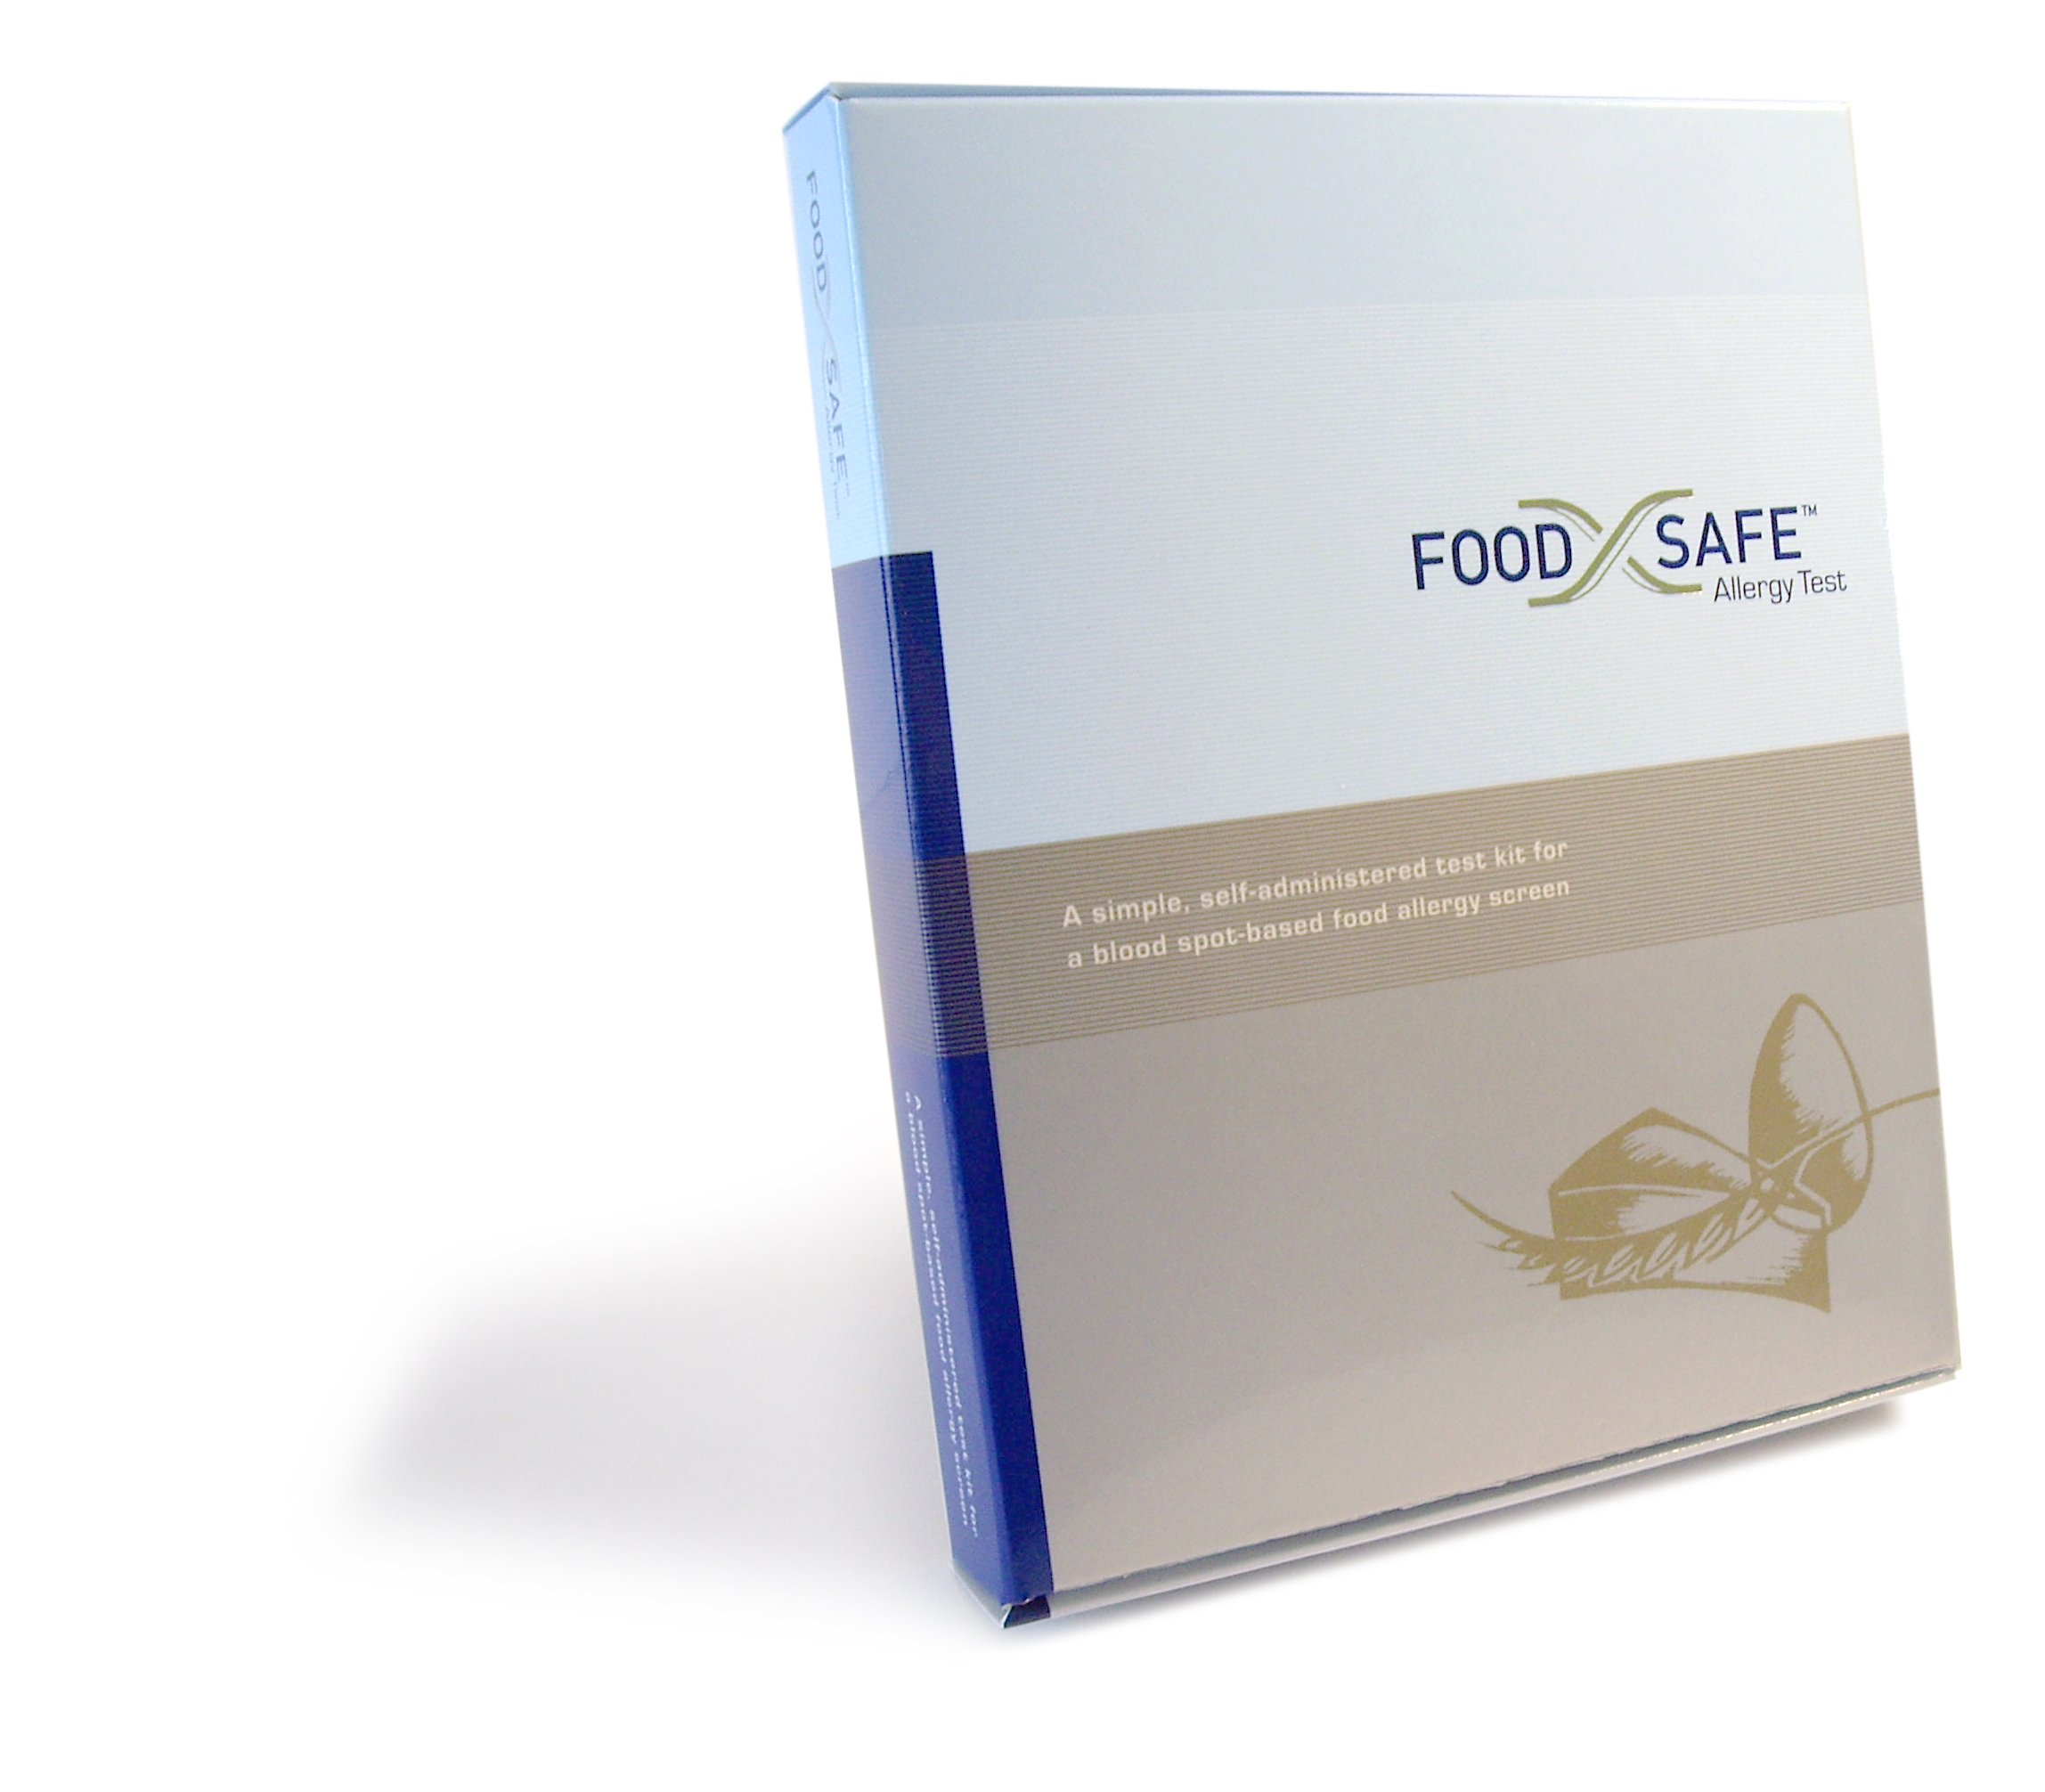 Food Safe Allergy Test with free book chapters from Meet Your Killers by Dr. Baxas